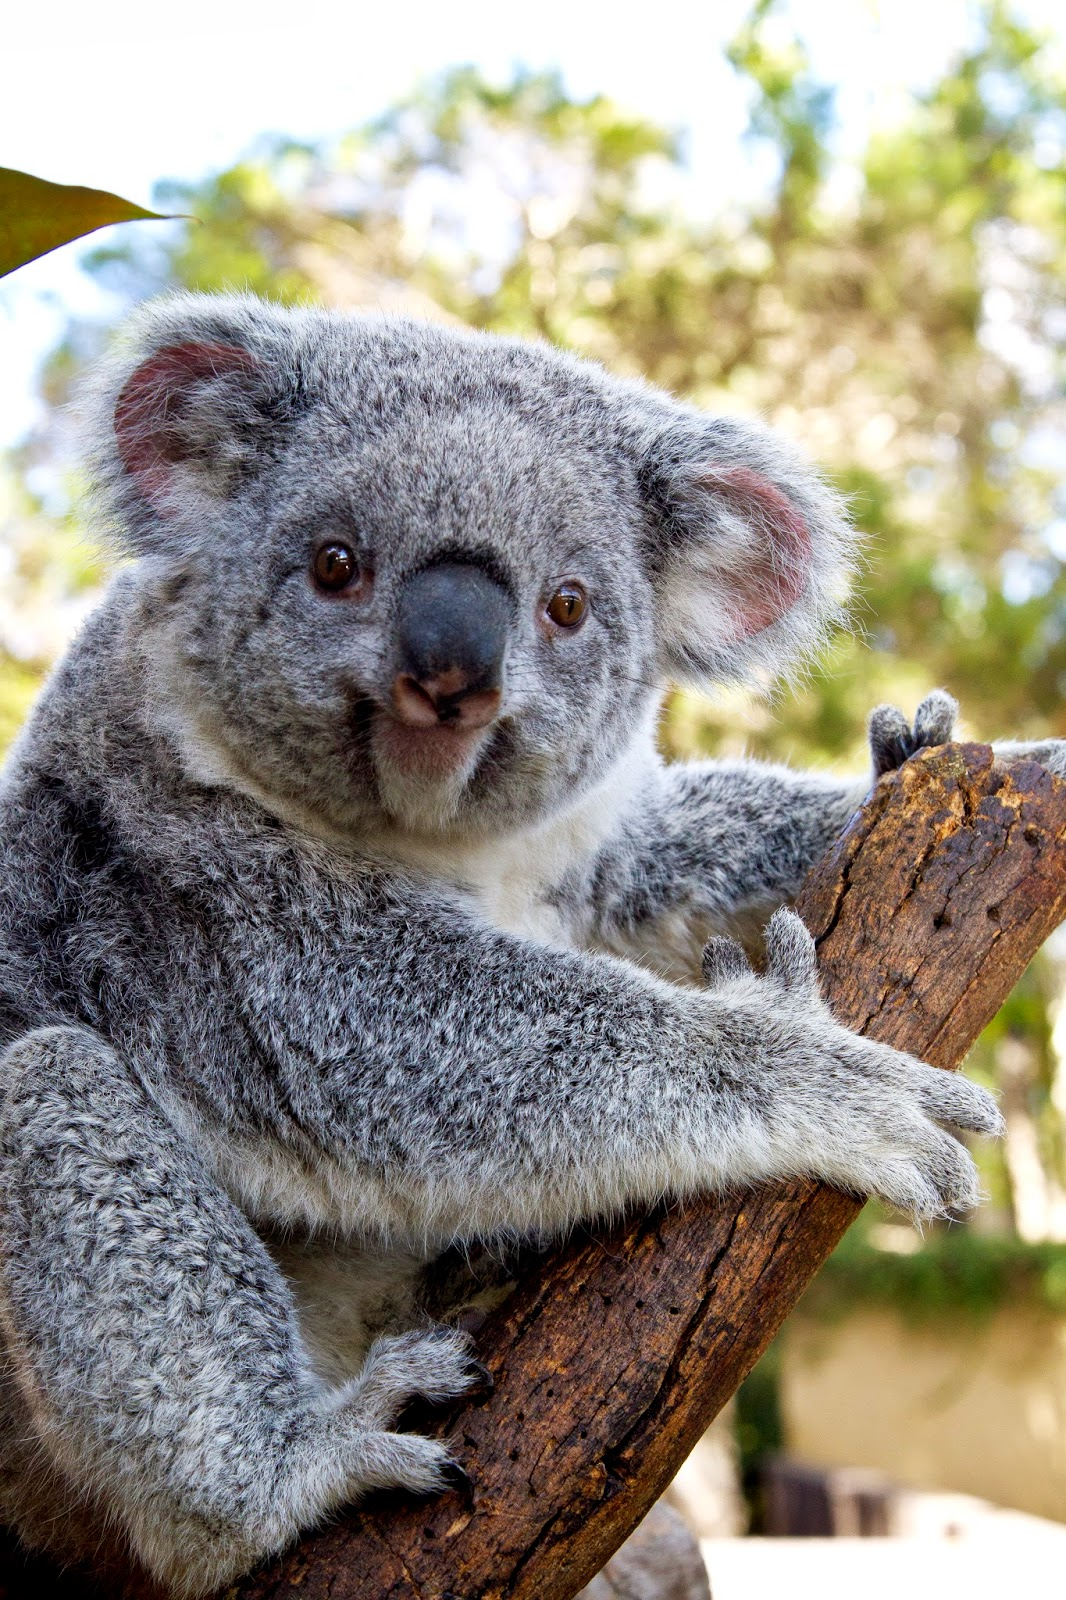 Life In the Desert: Koalas and reptiles...